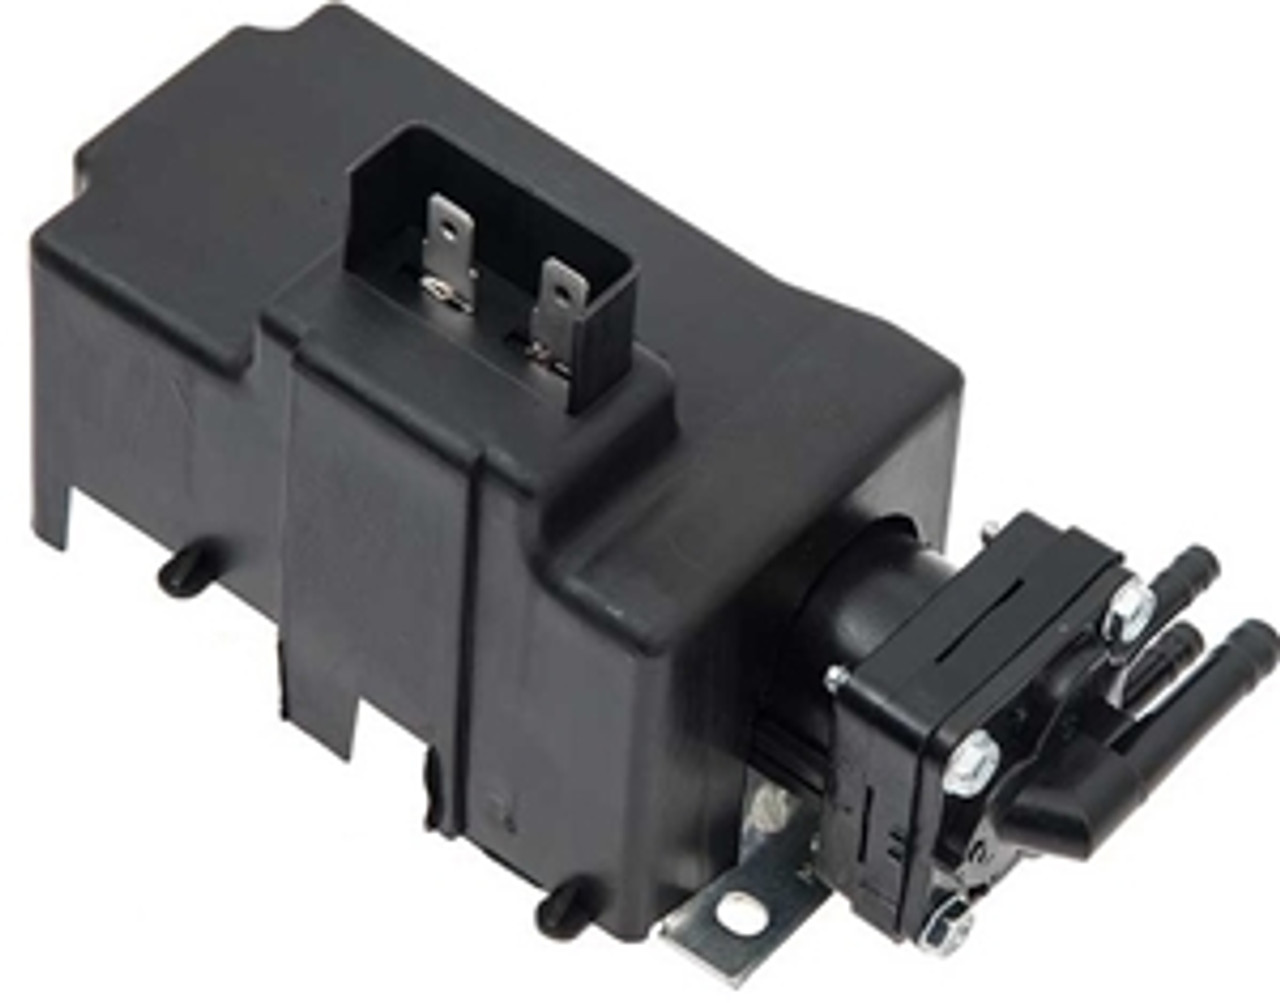 1964-67 Windshield Wiper Washer Pump, Al;so Fits 1968-72 Without Recess.